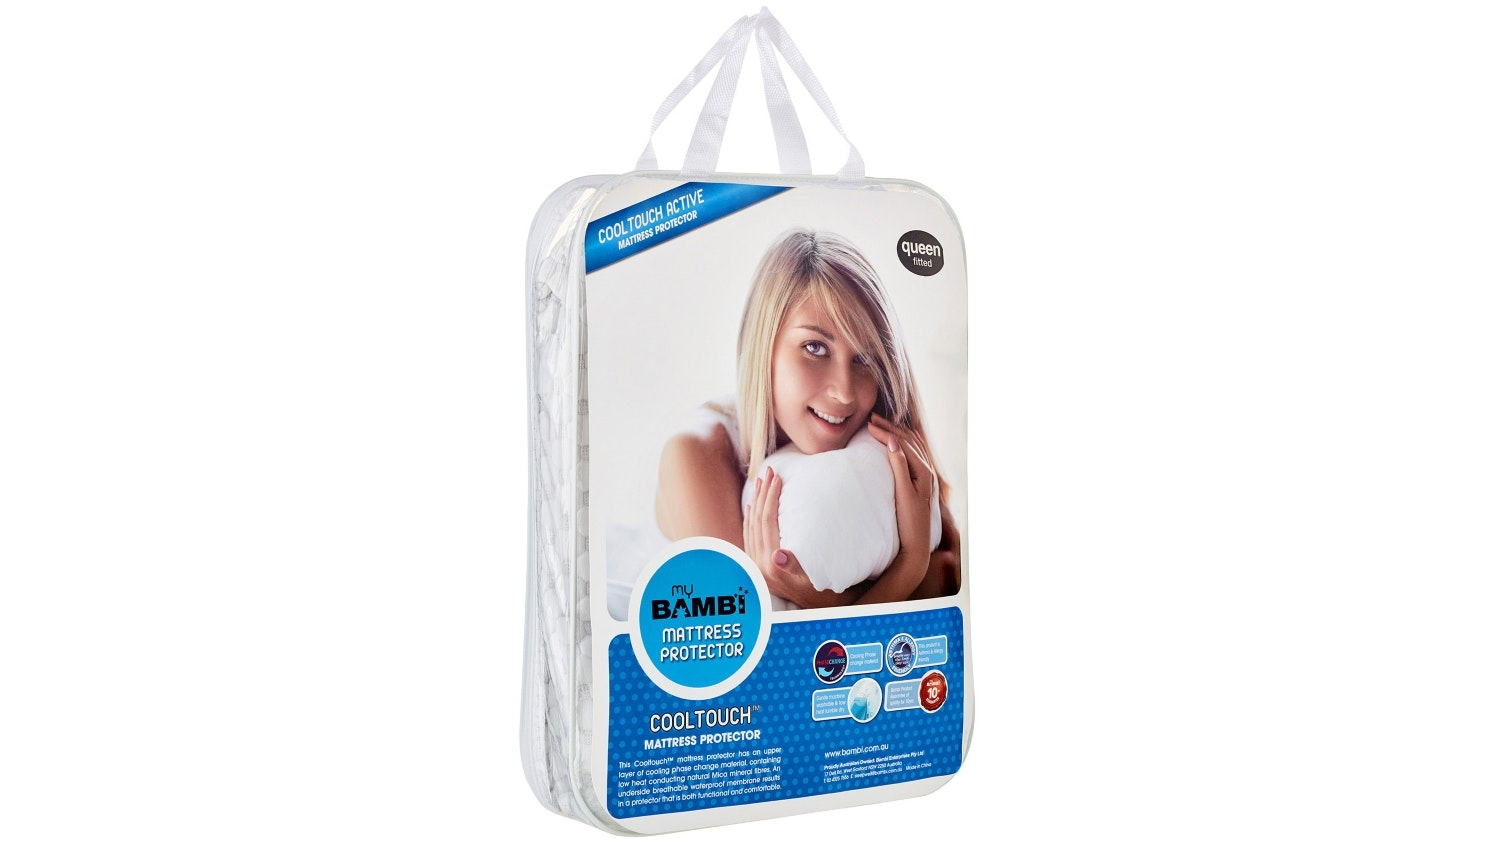 Bambi Cool Touch Mattress Protector